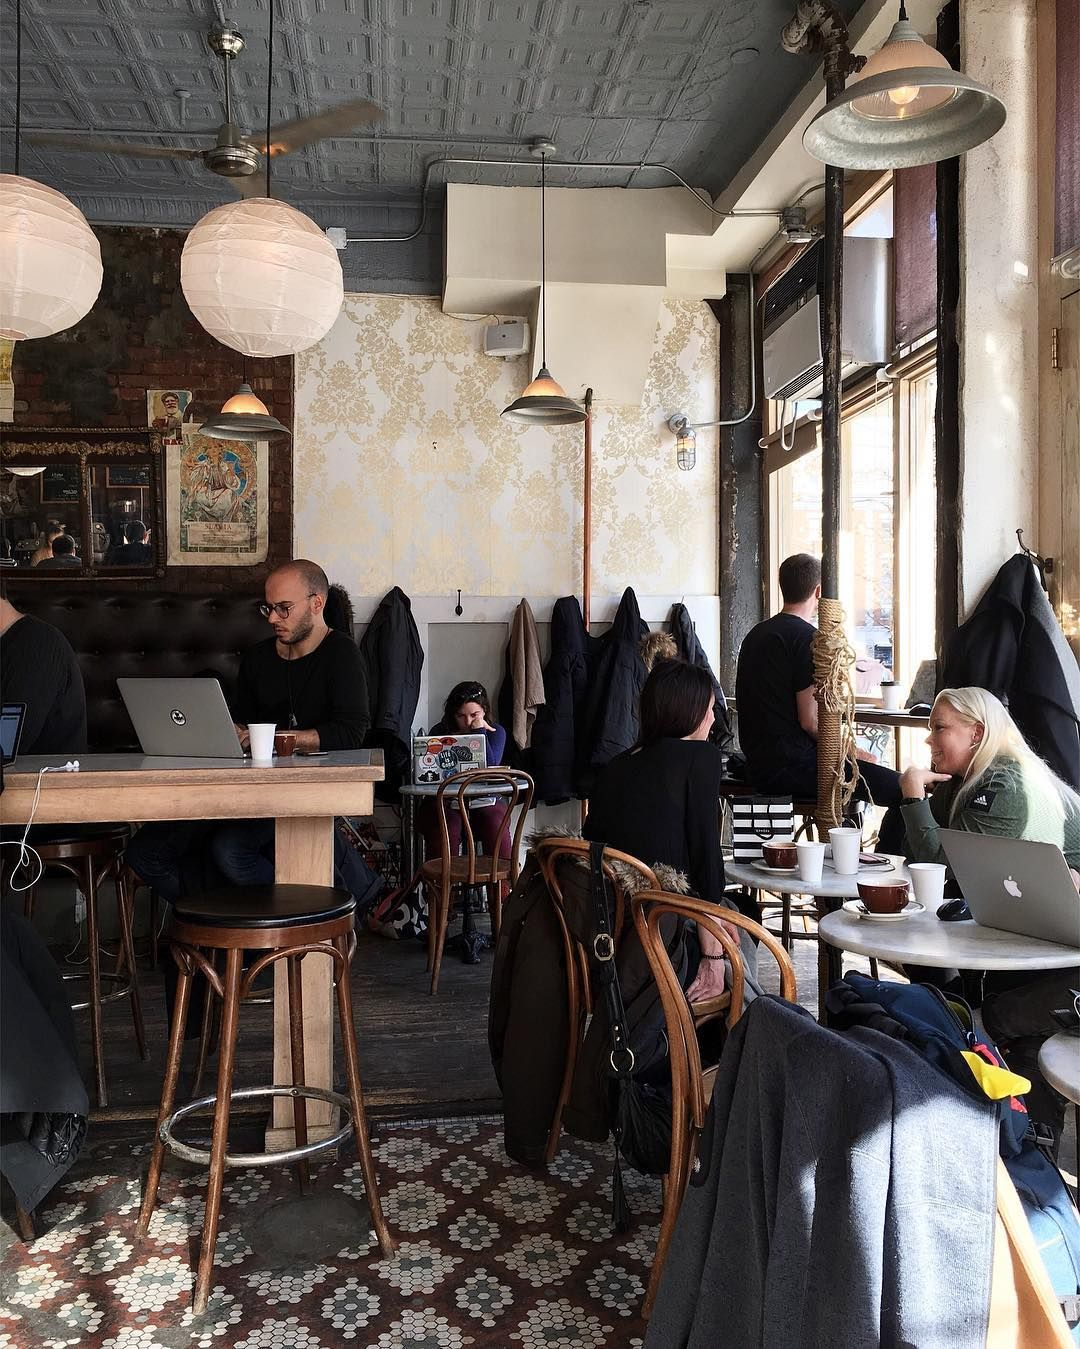 45+ Uncommon grounds coffee shop ideas